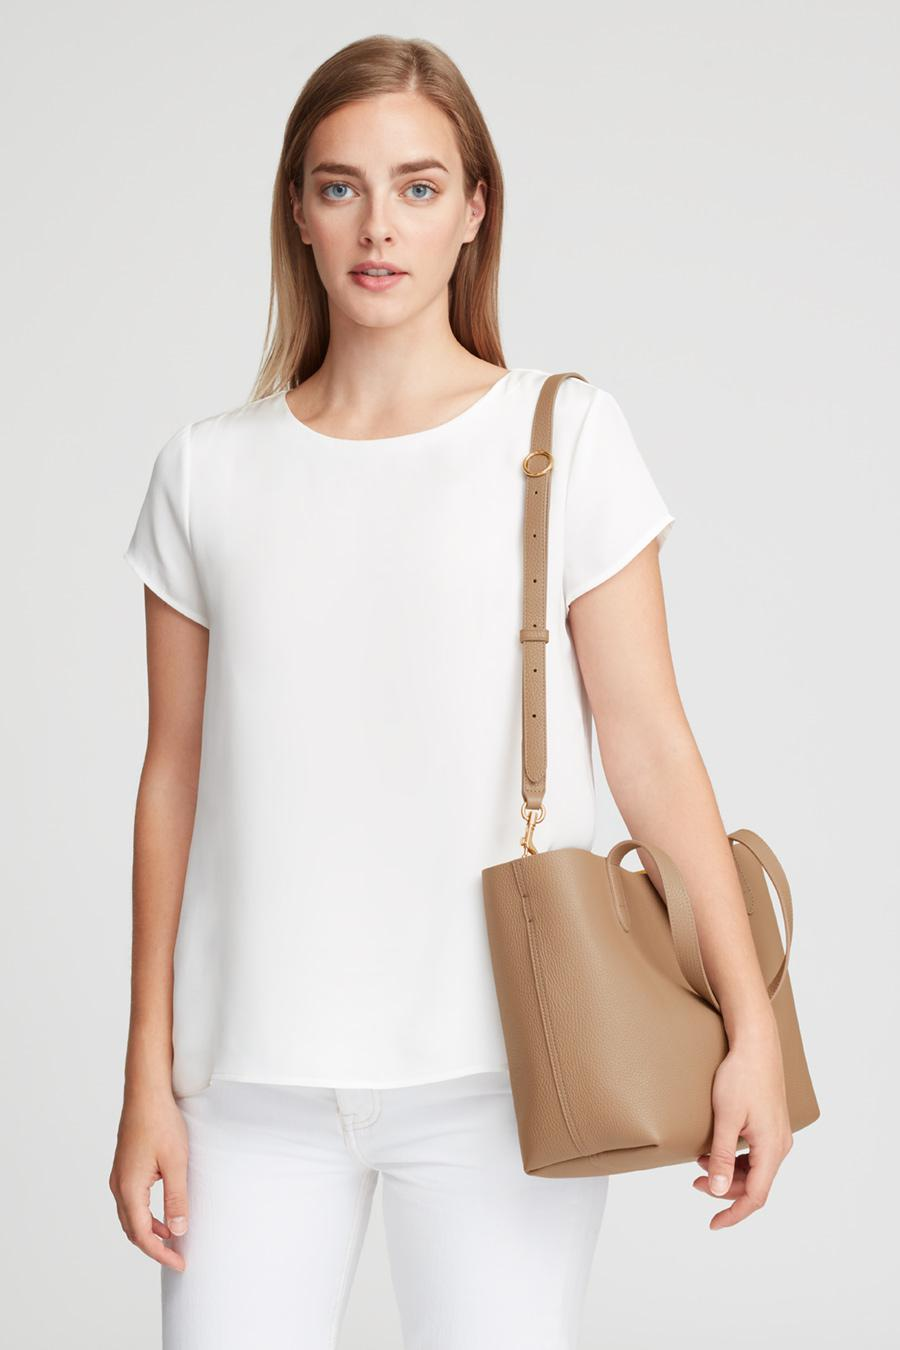 Women's Small Structured Leather Tote Bag in Cappuccino/Yellow | Pebbled Leather by Cuyana 4